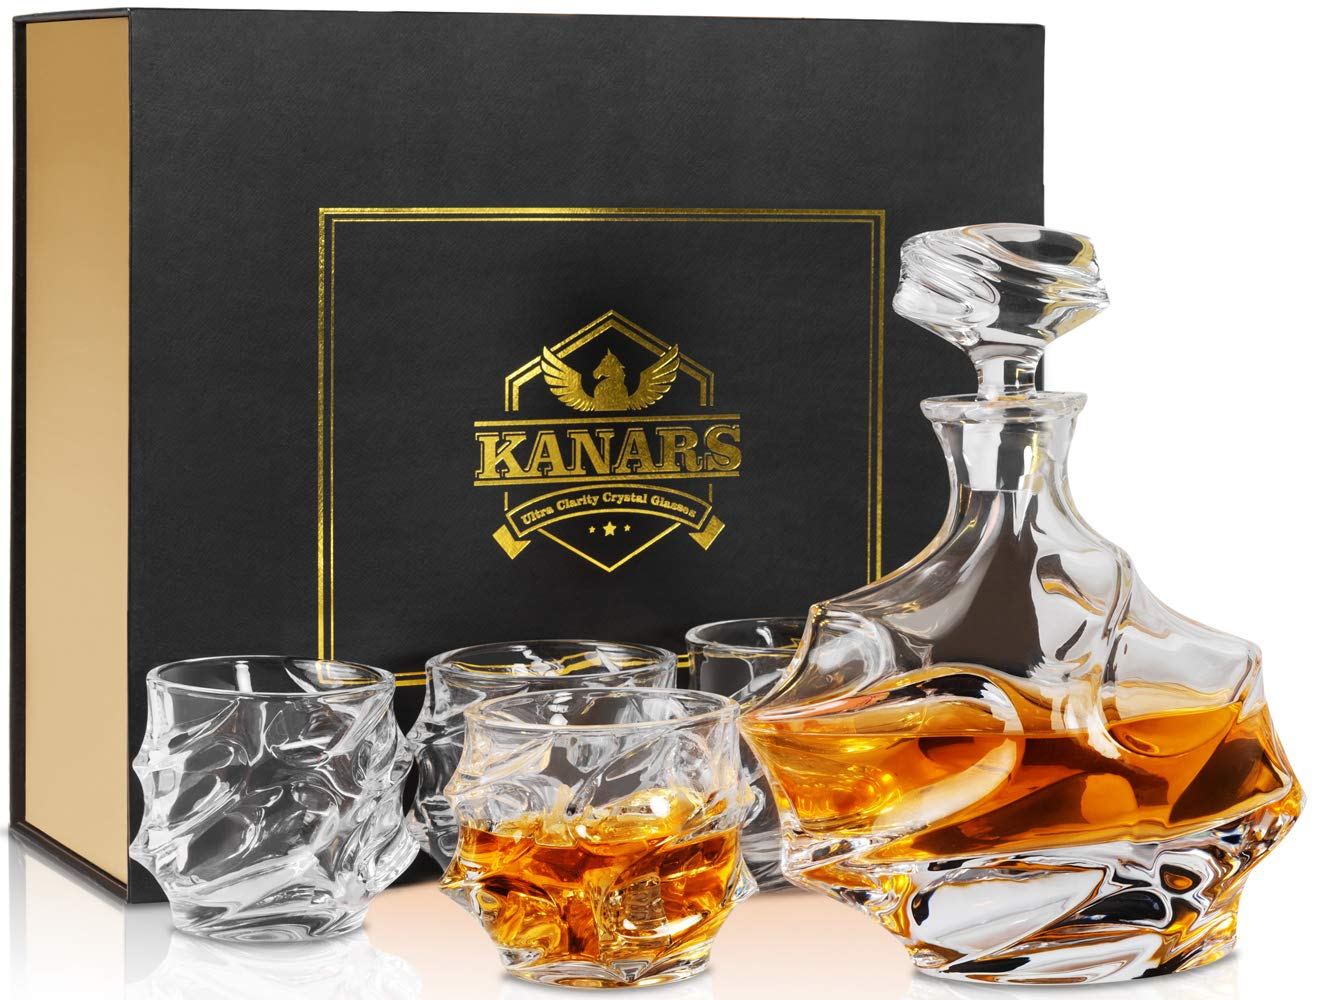 KANARS Emperor Whiskey Decanter And Glasses Set With Luxury Gift Box For Scotch + Bourbon + Liquor, 5-Piece, Original by KANARS (Image #1)